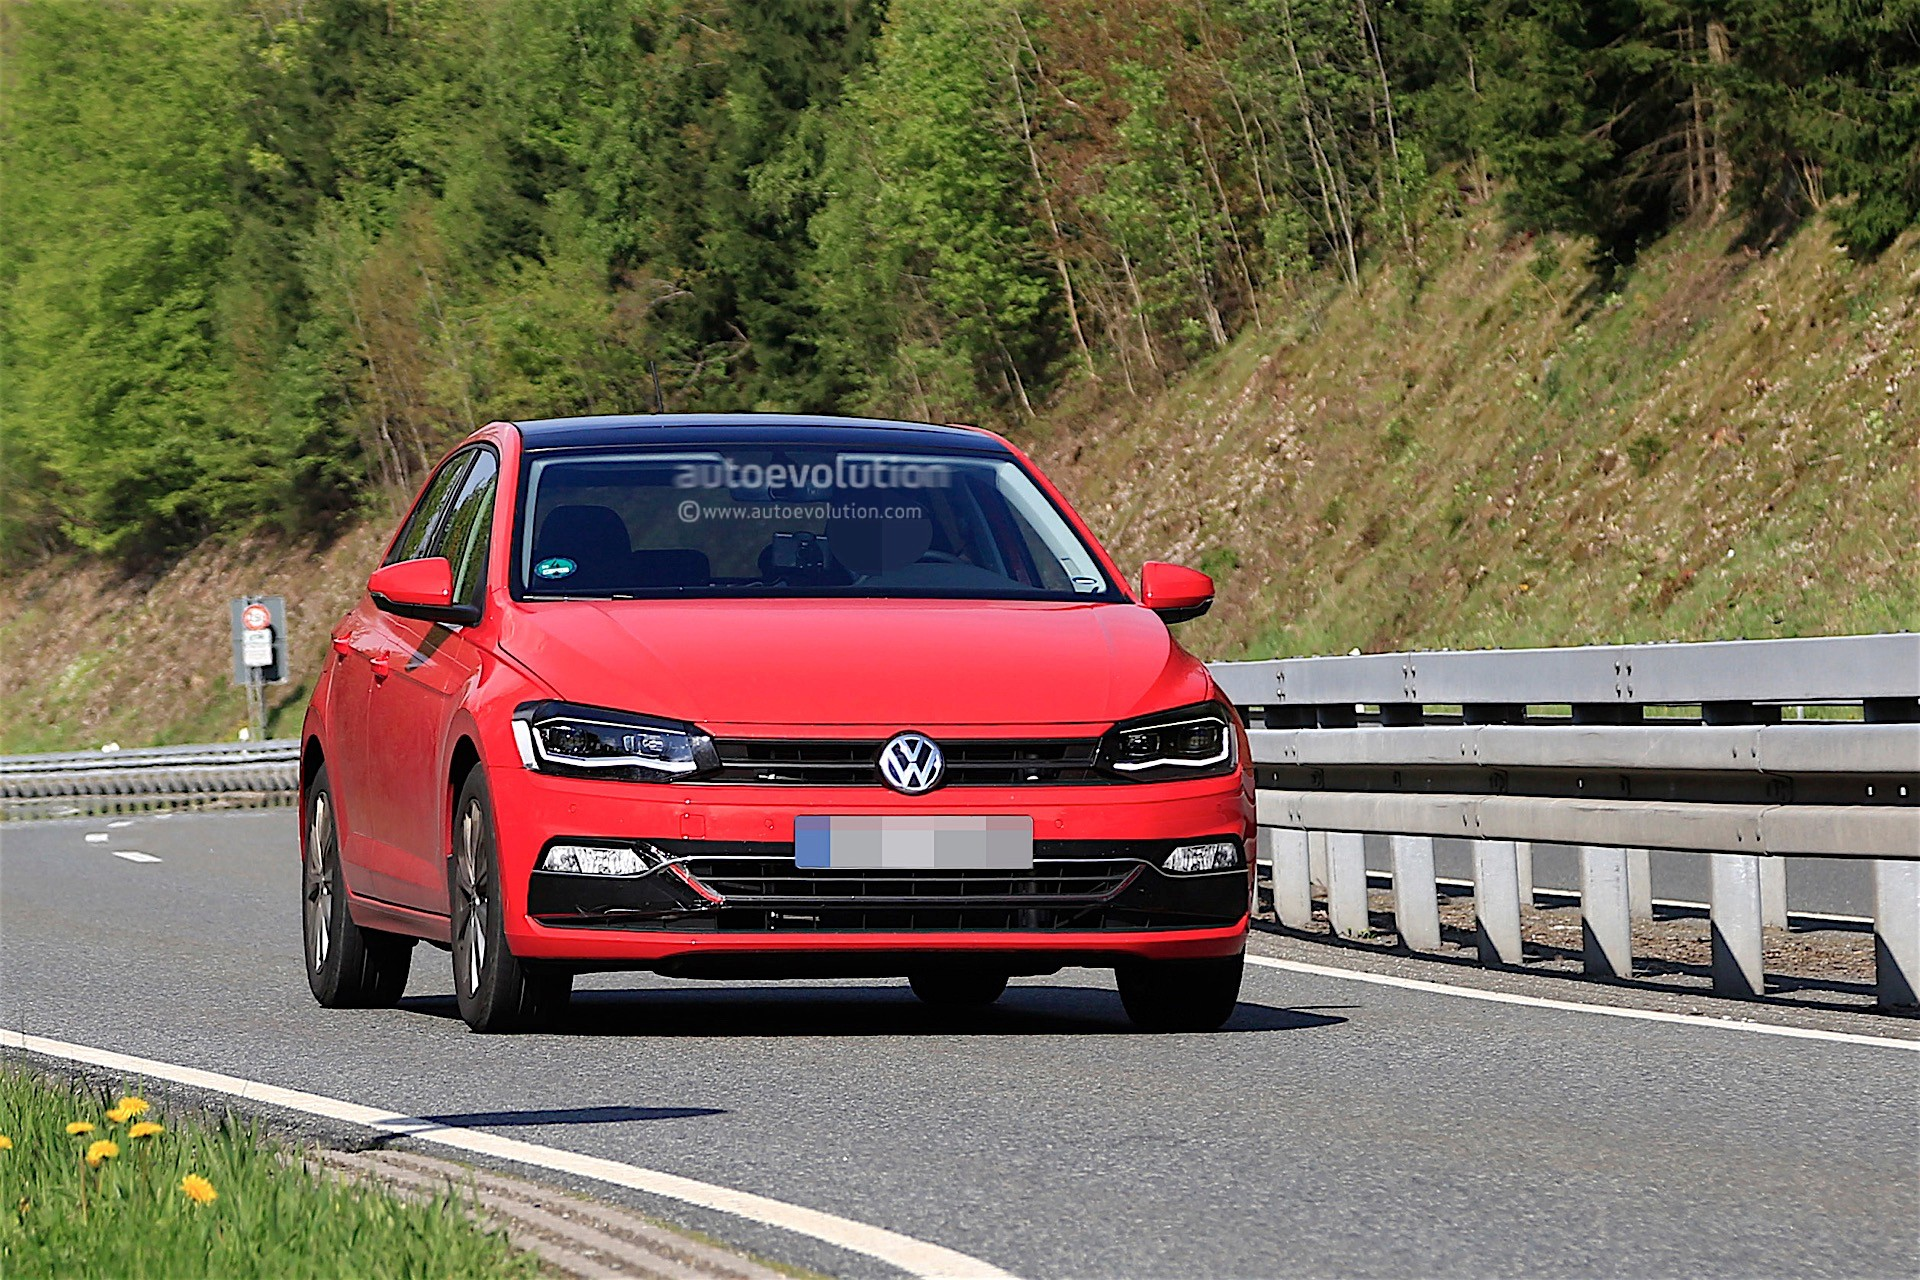 2018 Volkswagen Polo Spied Without Any Camouflage, Looks ...